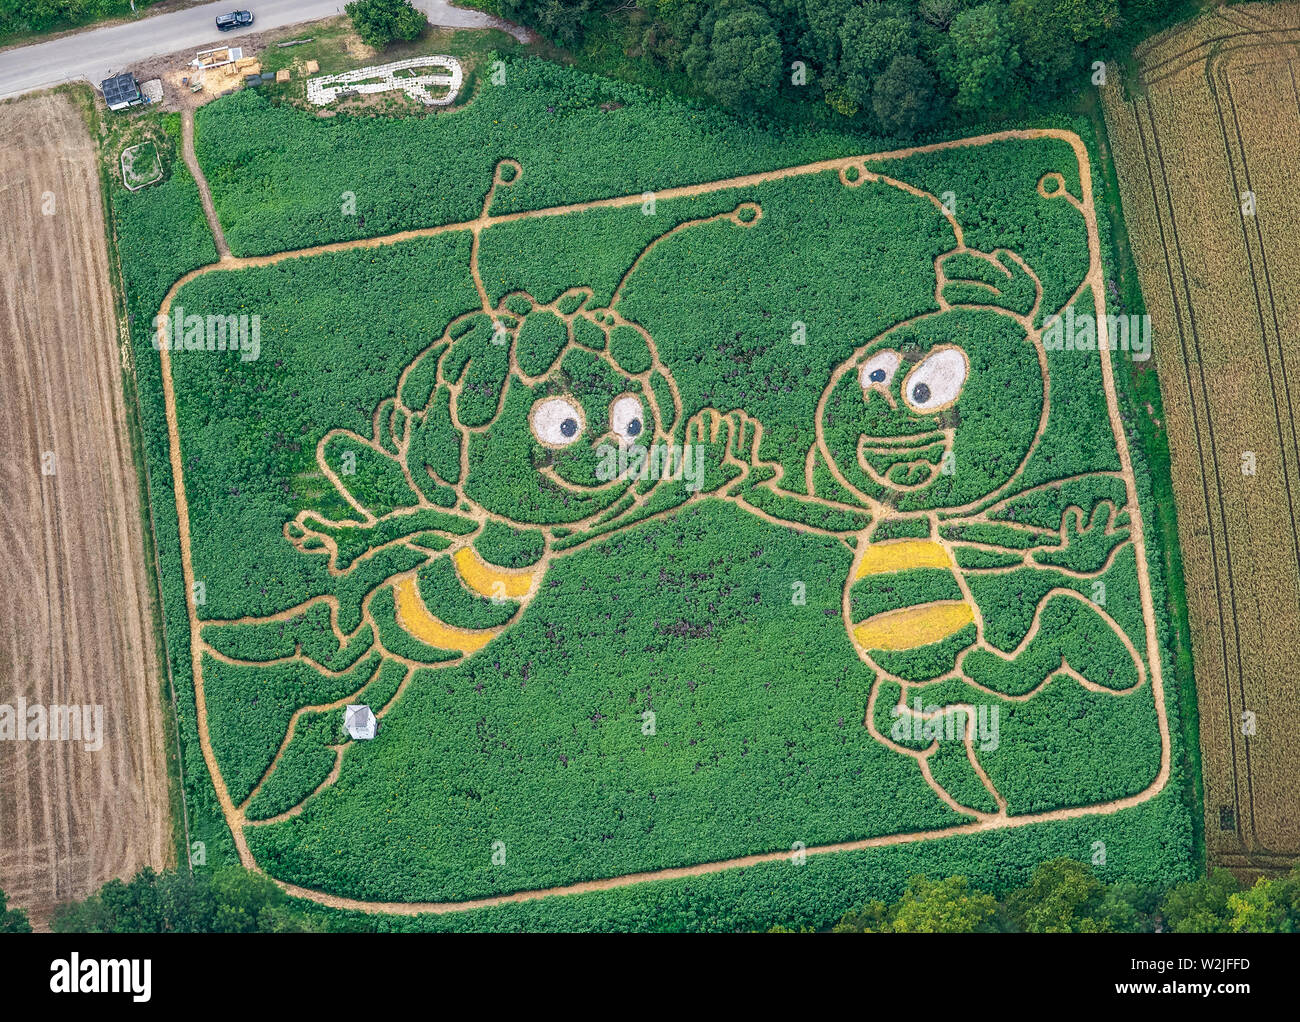 Utting am Ammersee, Bavaria, Germany. 9th July 2019. The aerial photograph shows a cultivated plant field on the shore of the Upper Bavarian Ammersee lake, in which the farmers Corinne and Uli Ernst and their 20-strong team have worked in a maze with the outlines of Maya the Bee and her friend Willi. A bee-friendly plant mixture of sunflowers, hemp, maize, wild mallow, ornamental pumpkins, beans, wild wine and hops was sown in April. Credit: dpa picture alliance/Alamy Live News - Stock Image